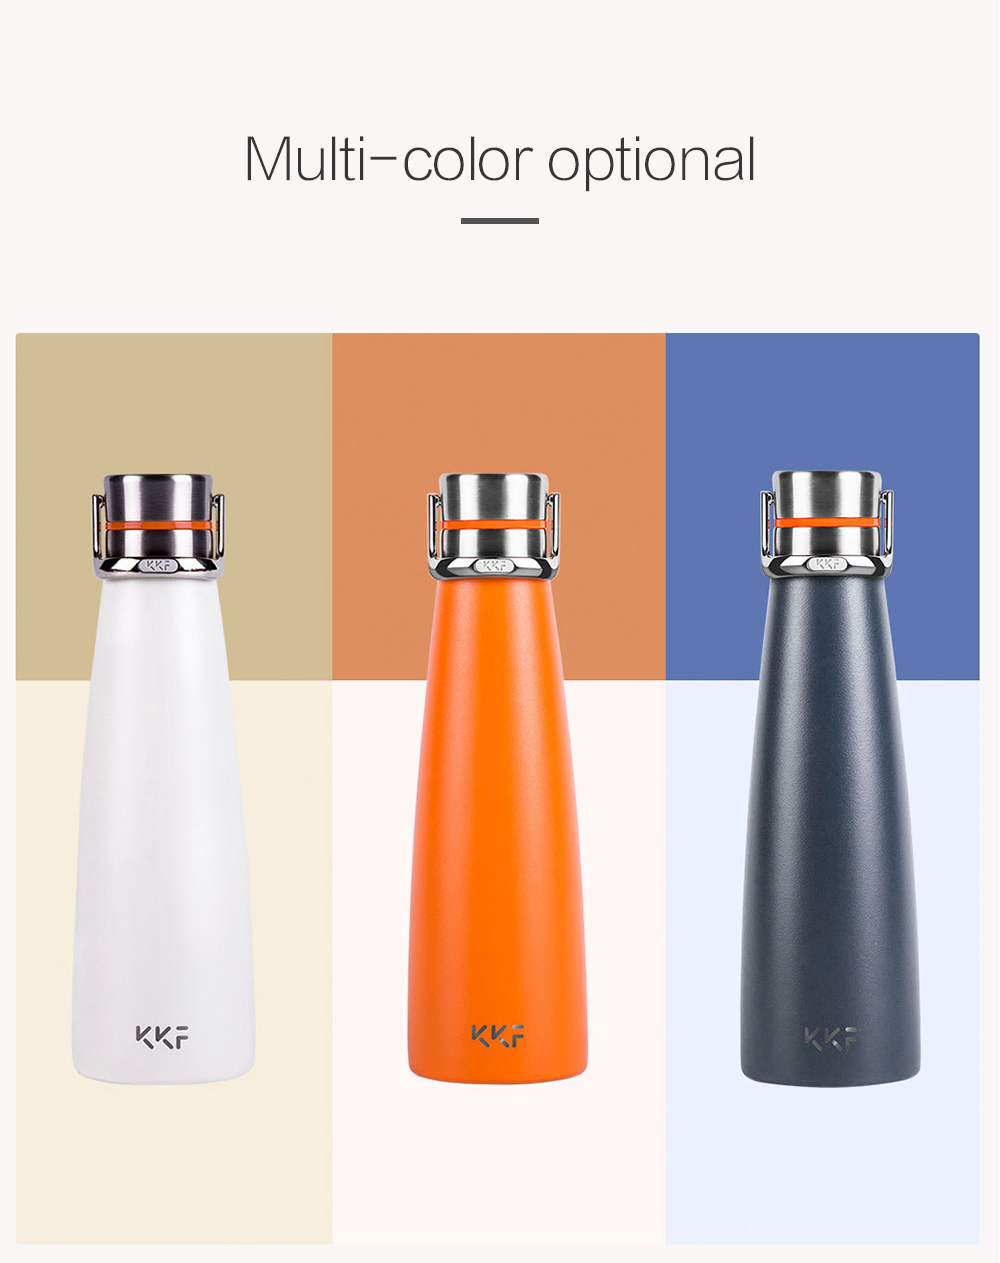 KKF Smart Vacuum Cup OLED Display from Xiaomi youpin- Beige Smart Version